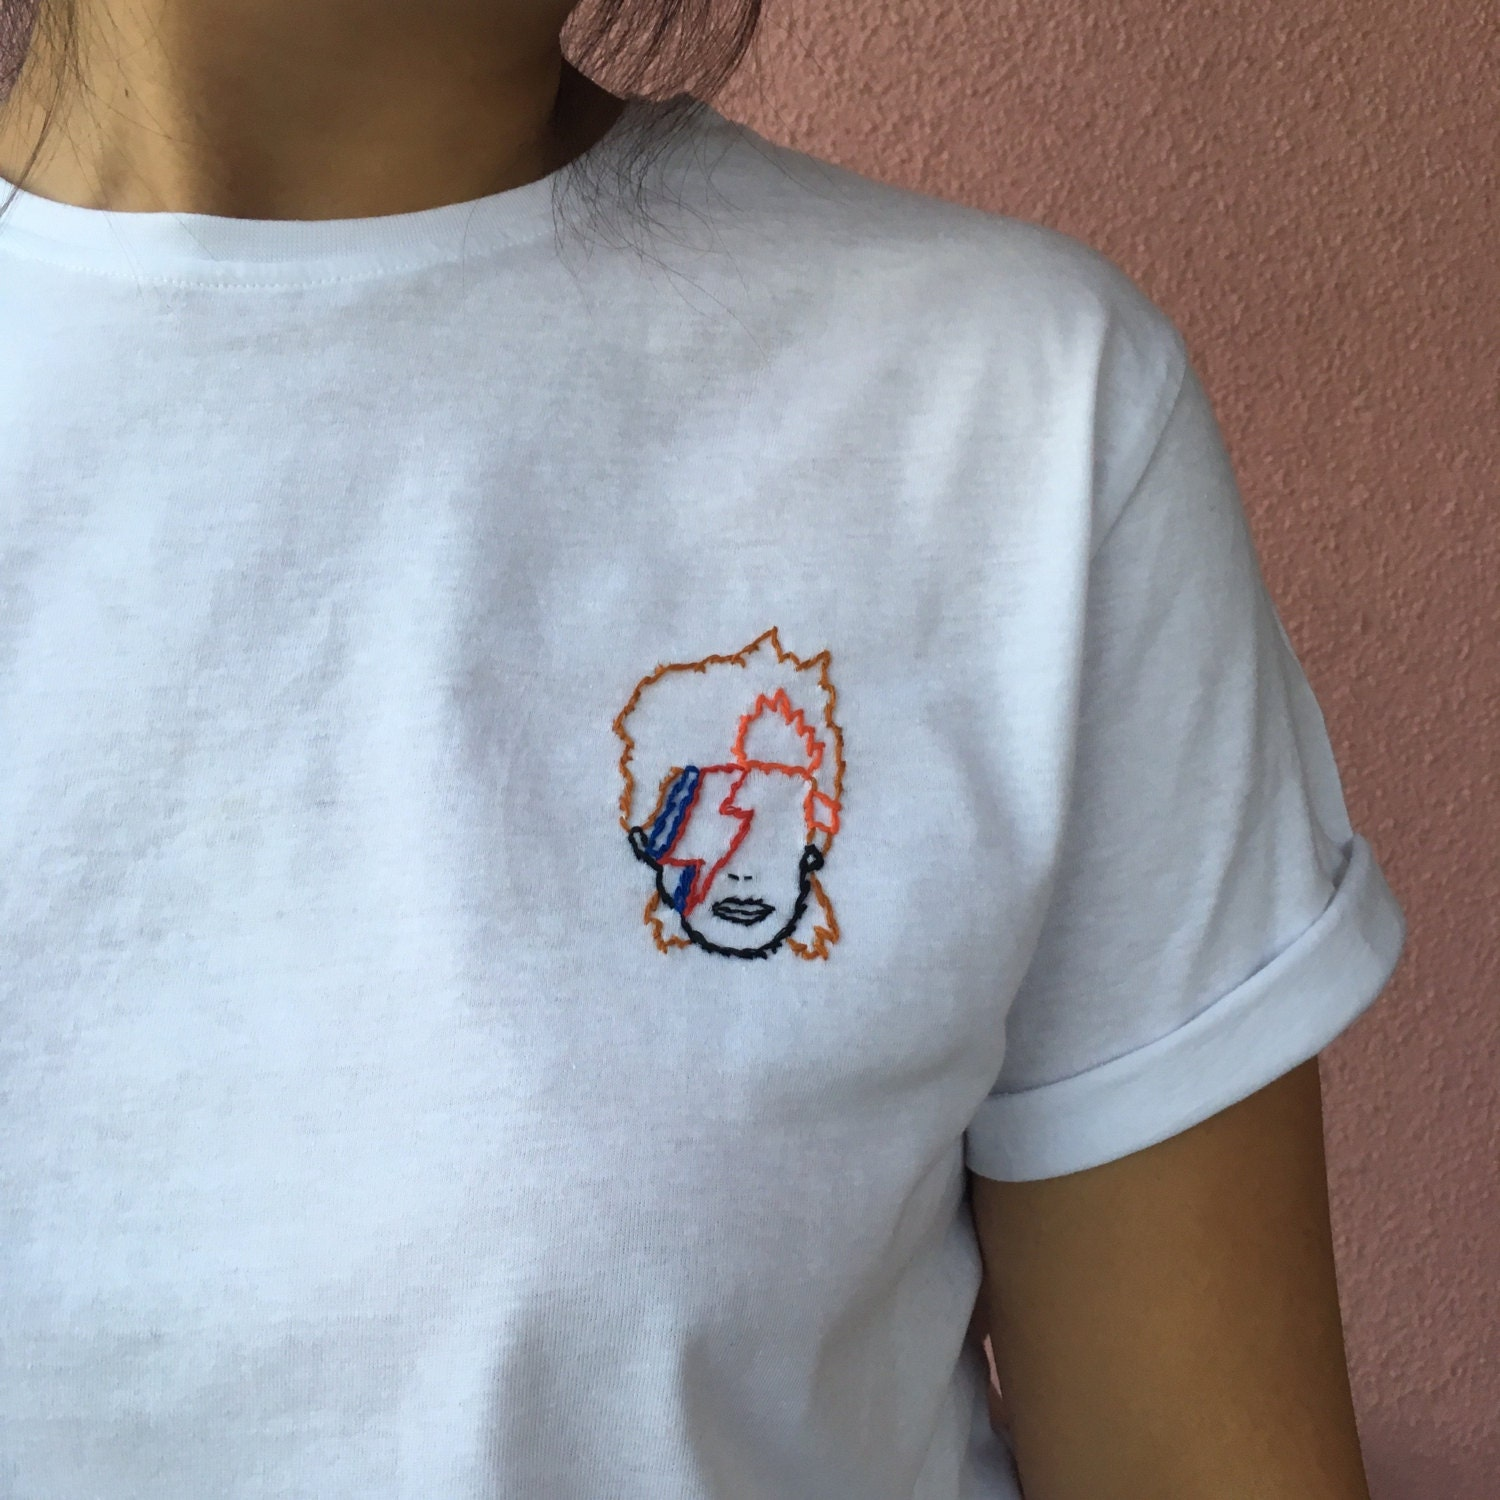 David bowie tee hand embroidered tshirt embroidery